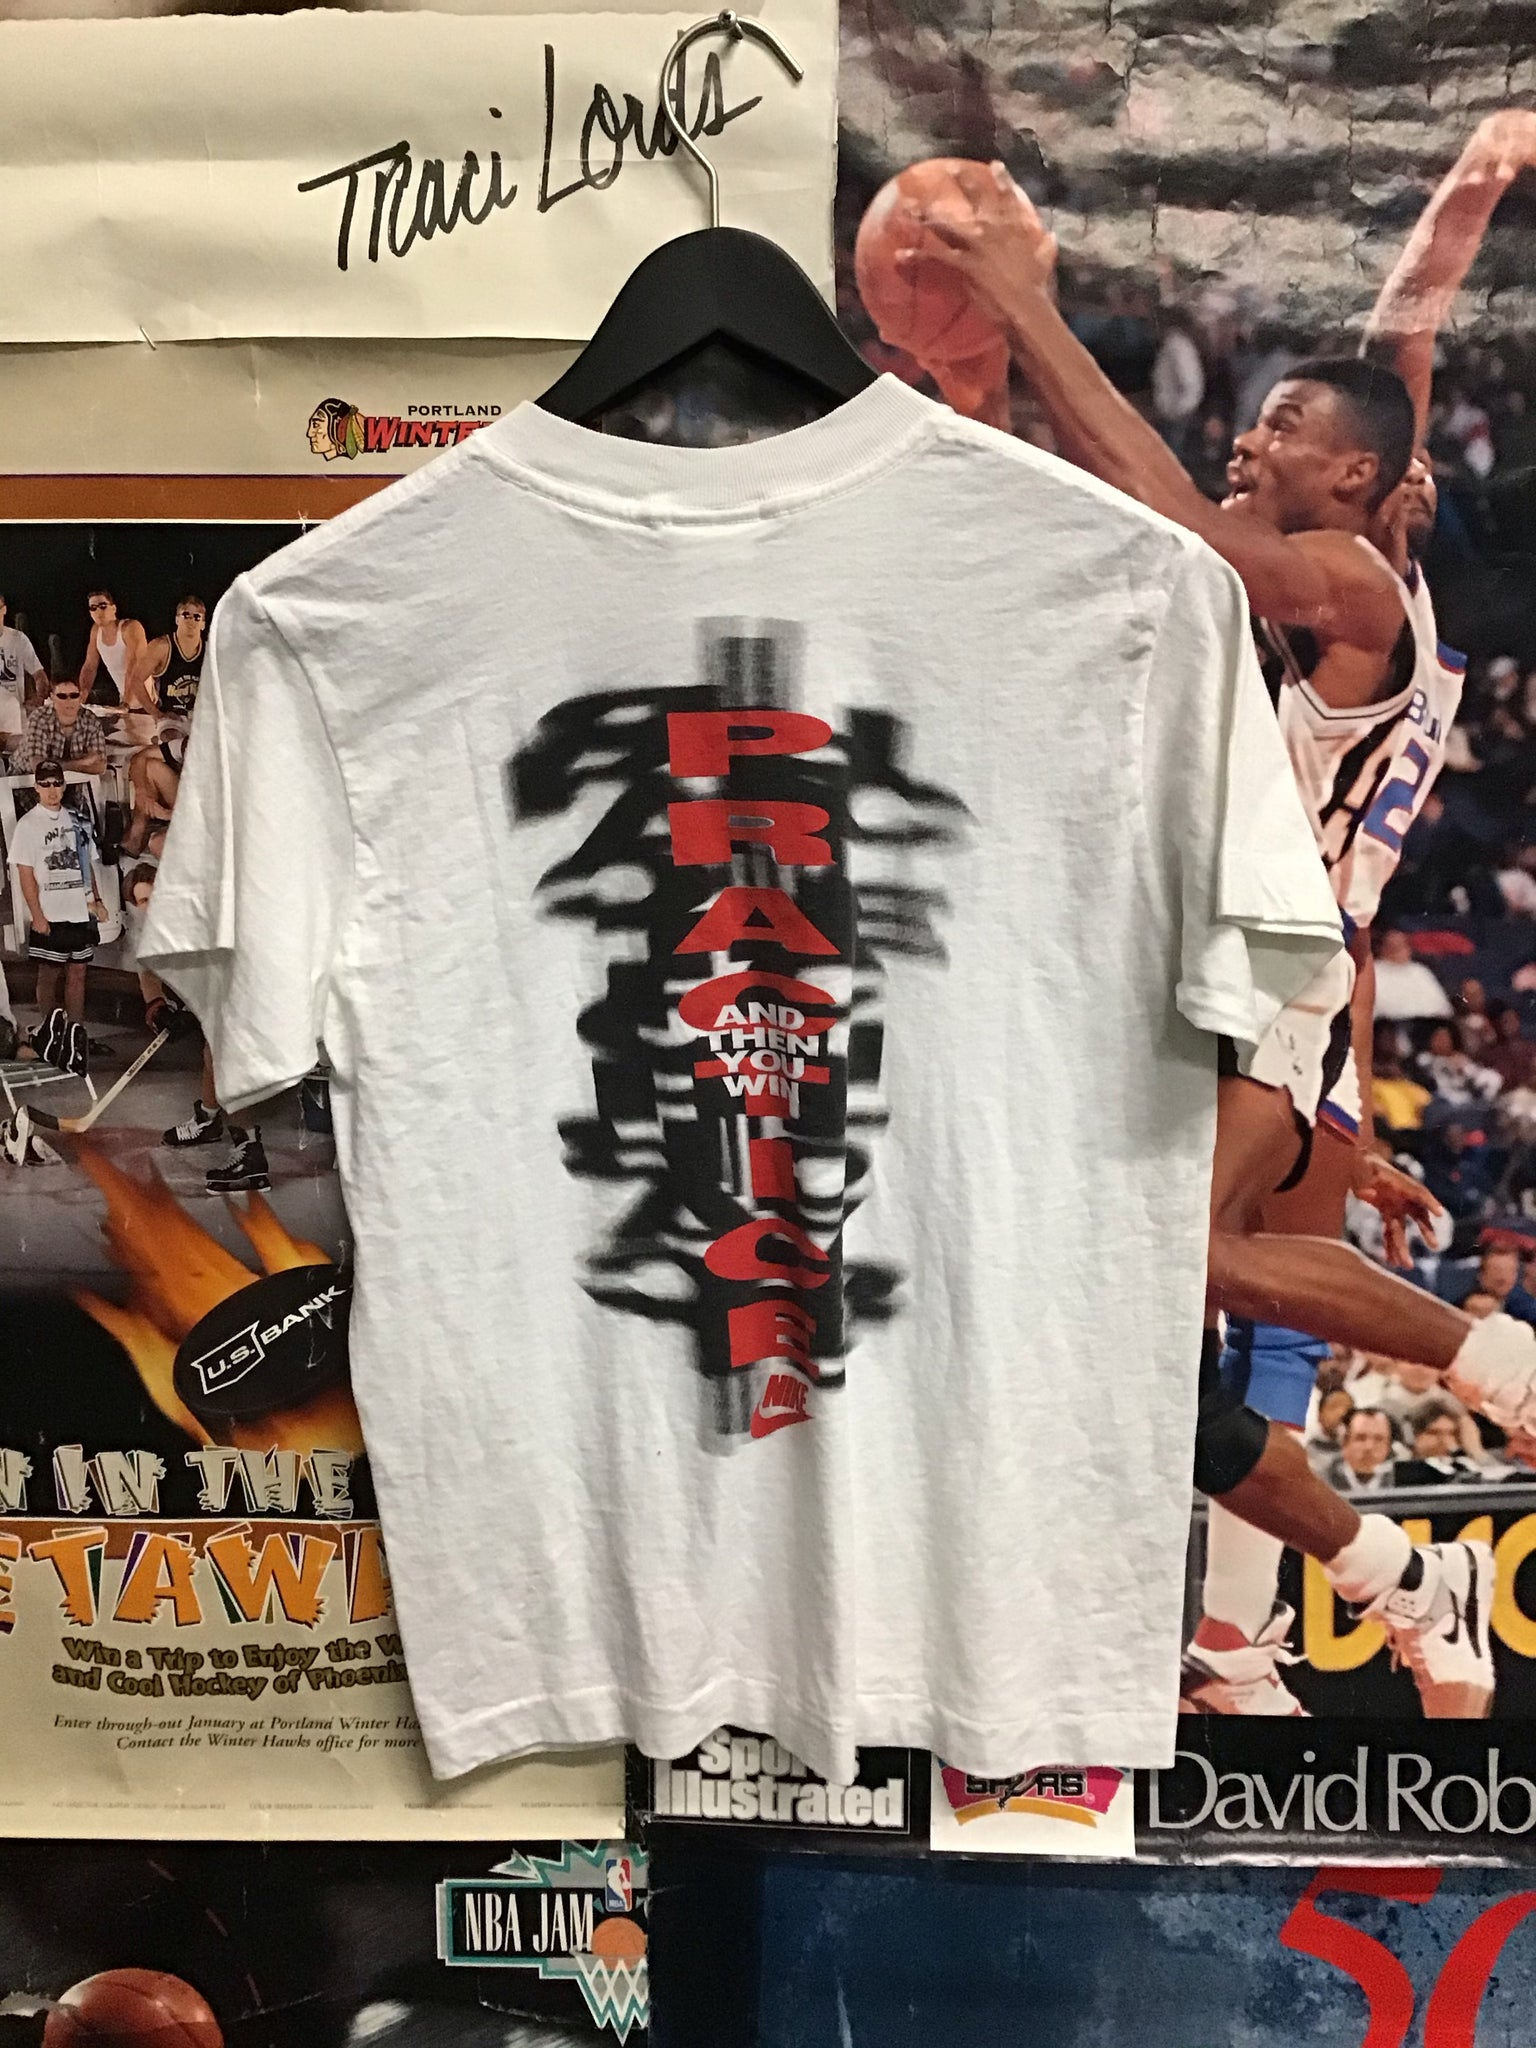 Nike Practice Tee Youth Medium - Decades of dope